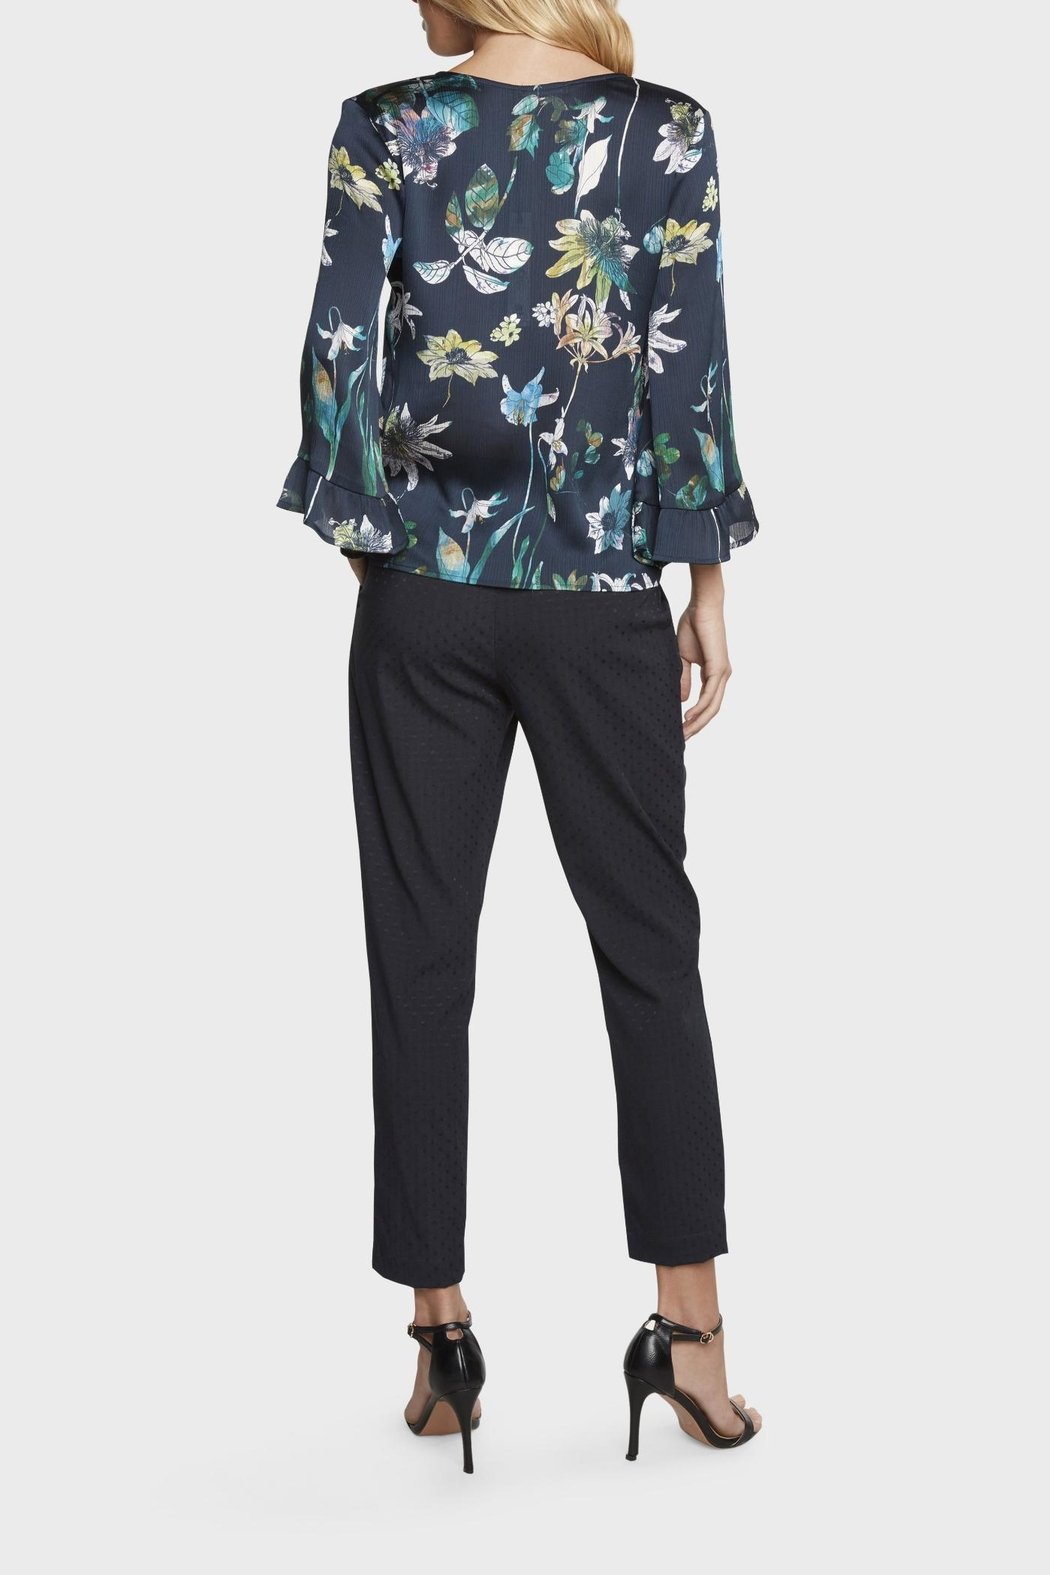 Willow & Clay Floral Bell Sleeve Top - Side Cropped Image